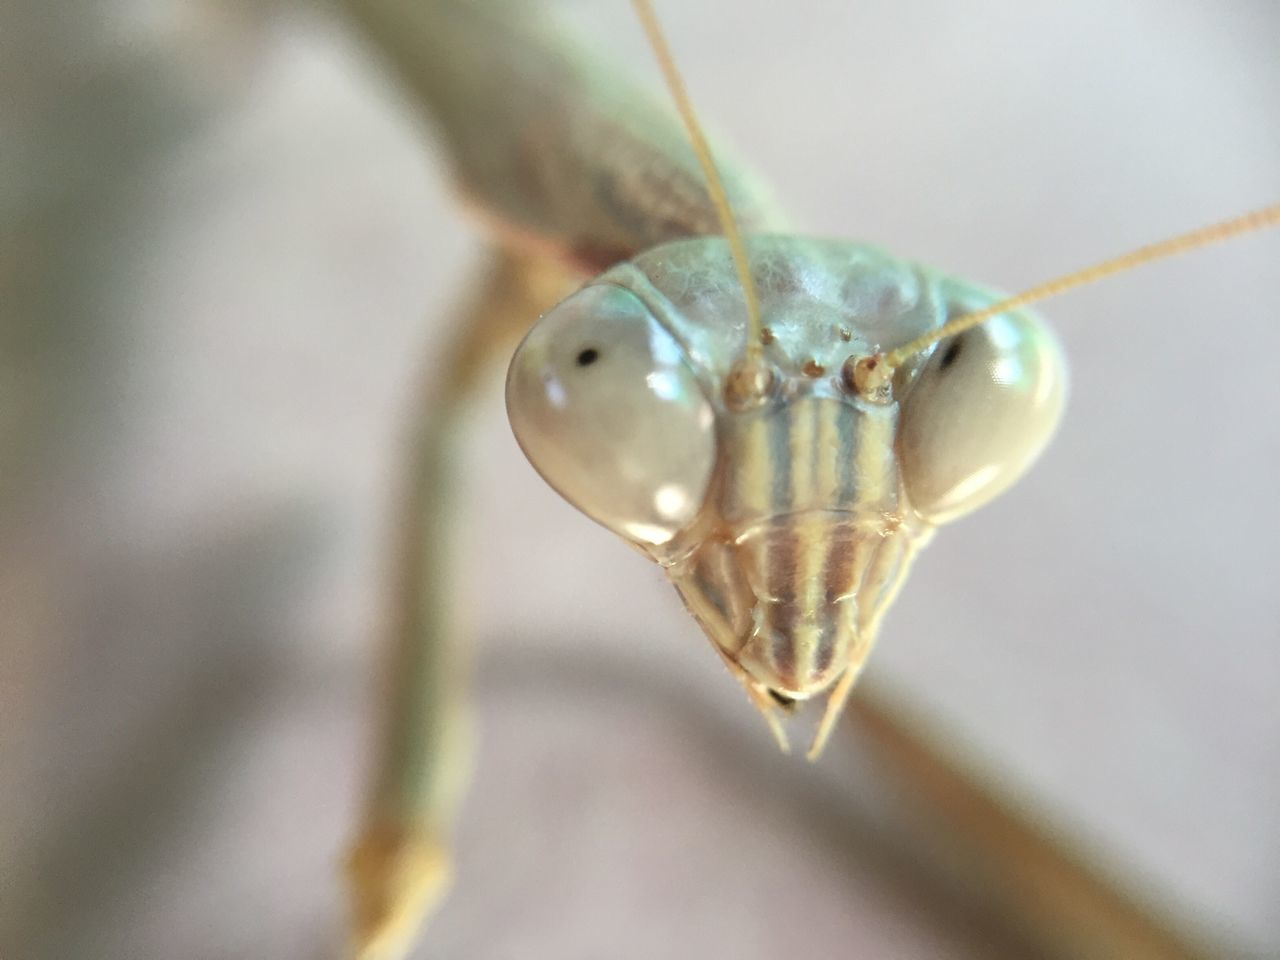 insect, close-up, animal themes, one animal, no people, animals in the wild, outdoors, day, nature, eyeball